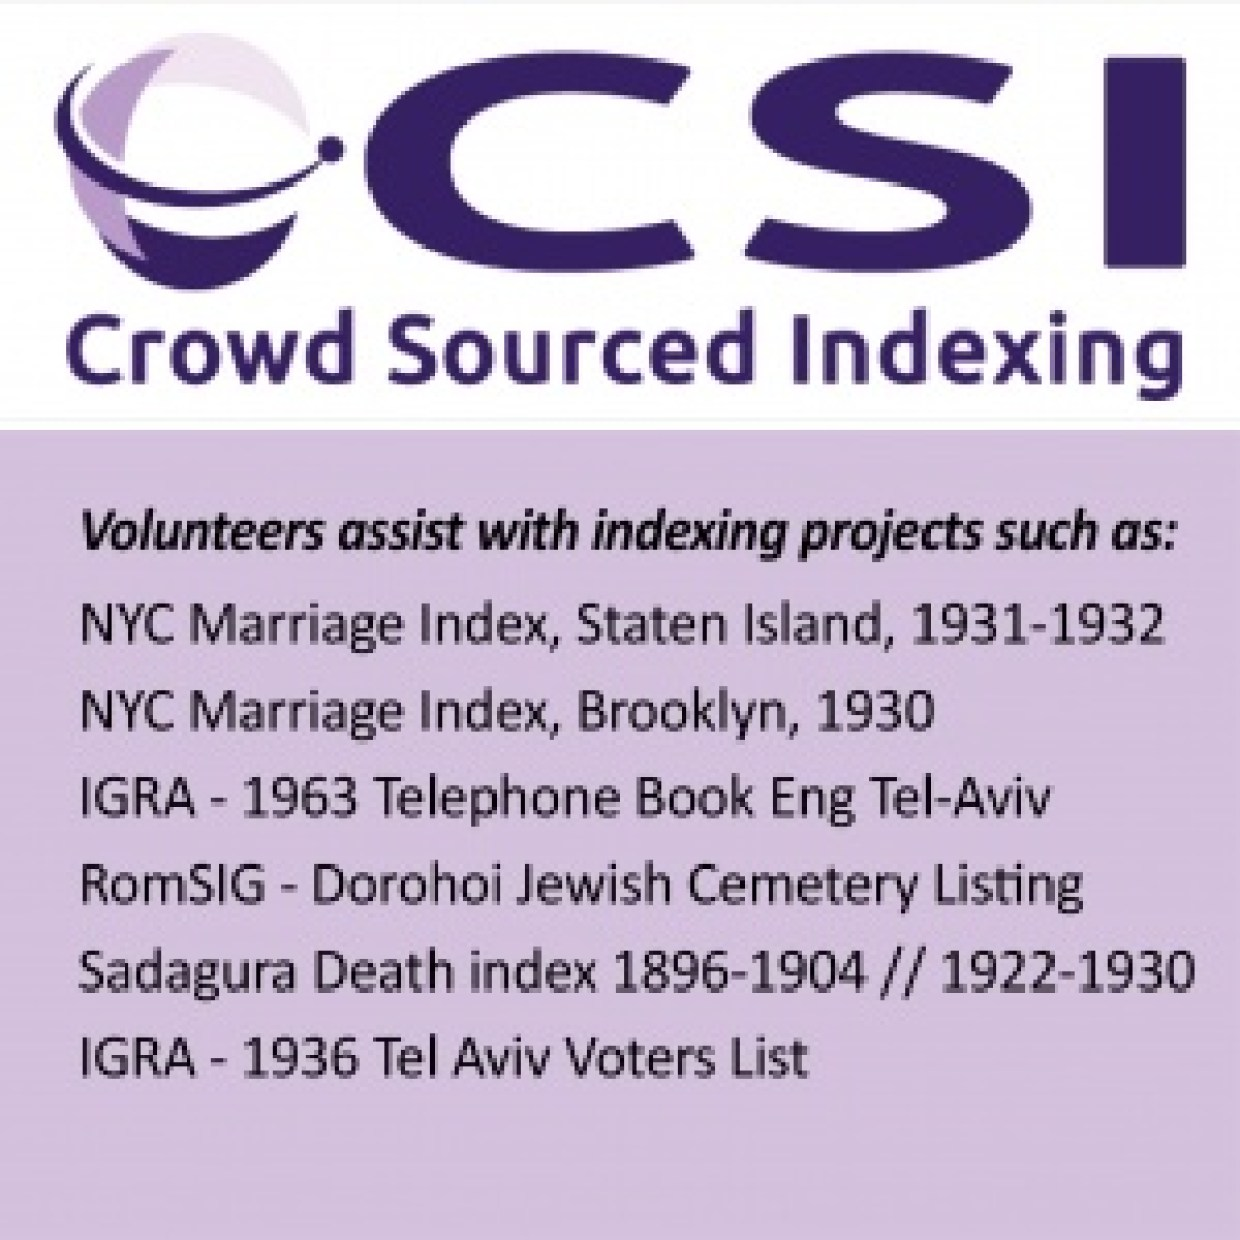 genealogy volunteer indexing